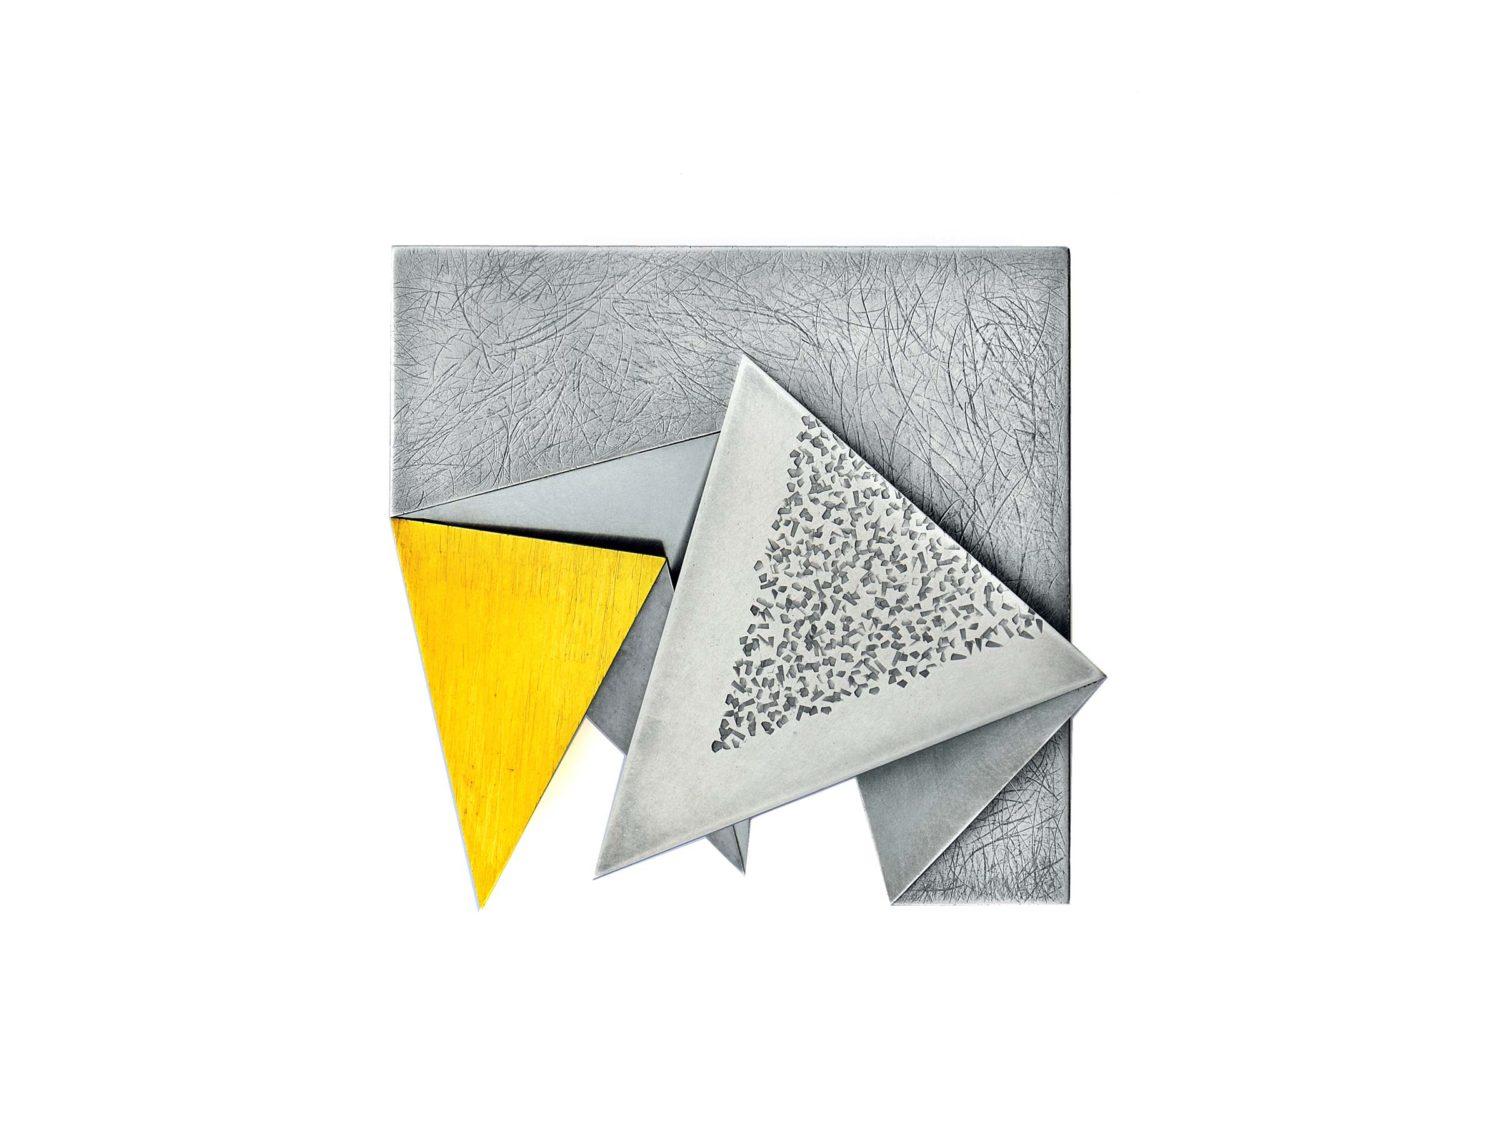 brooch, oxidized silver, gold, stainless steel, 2010